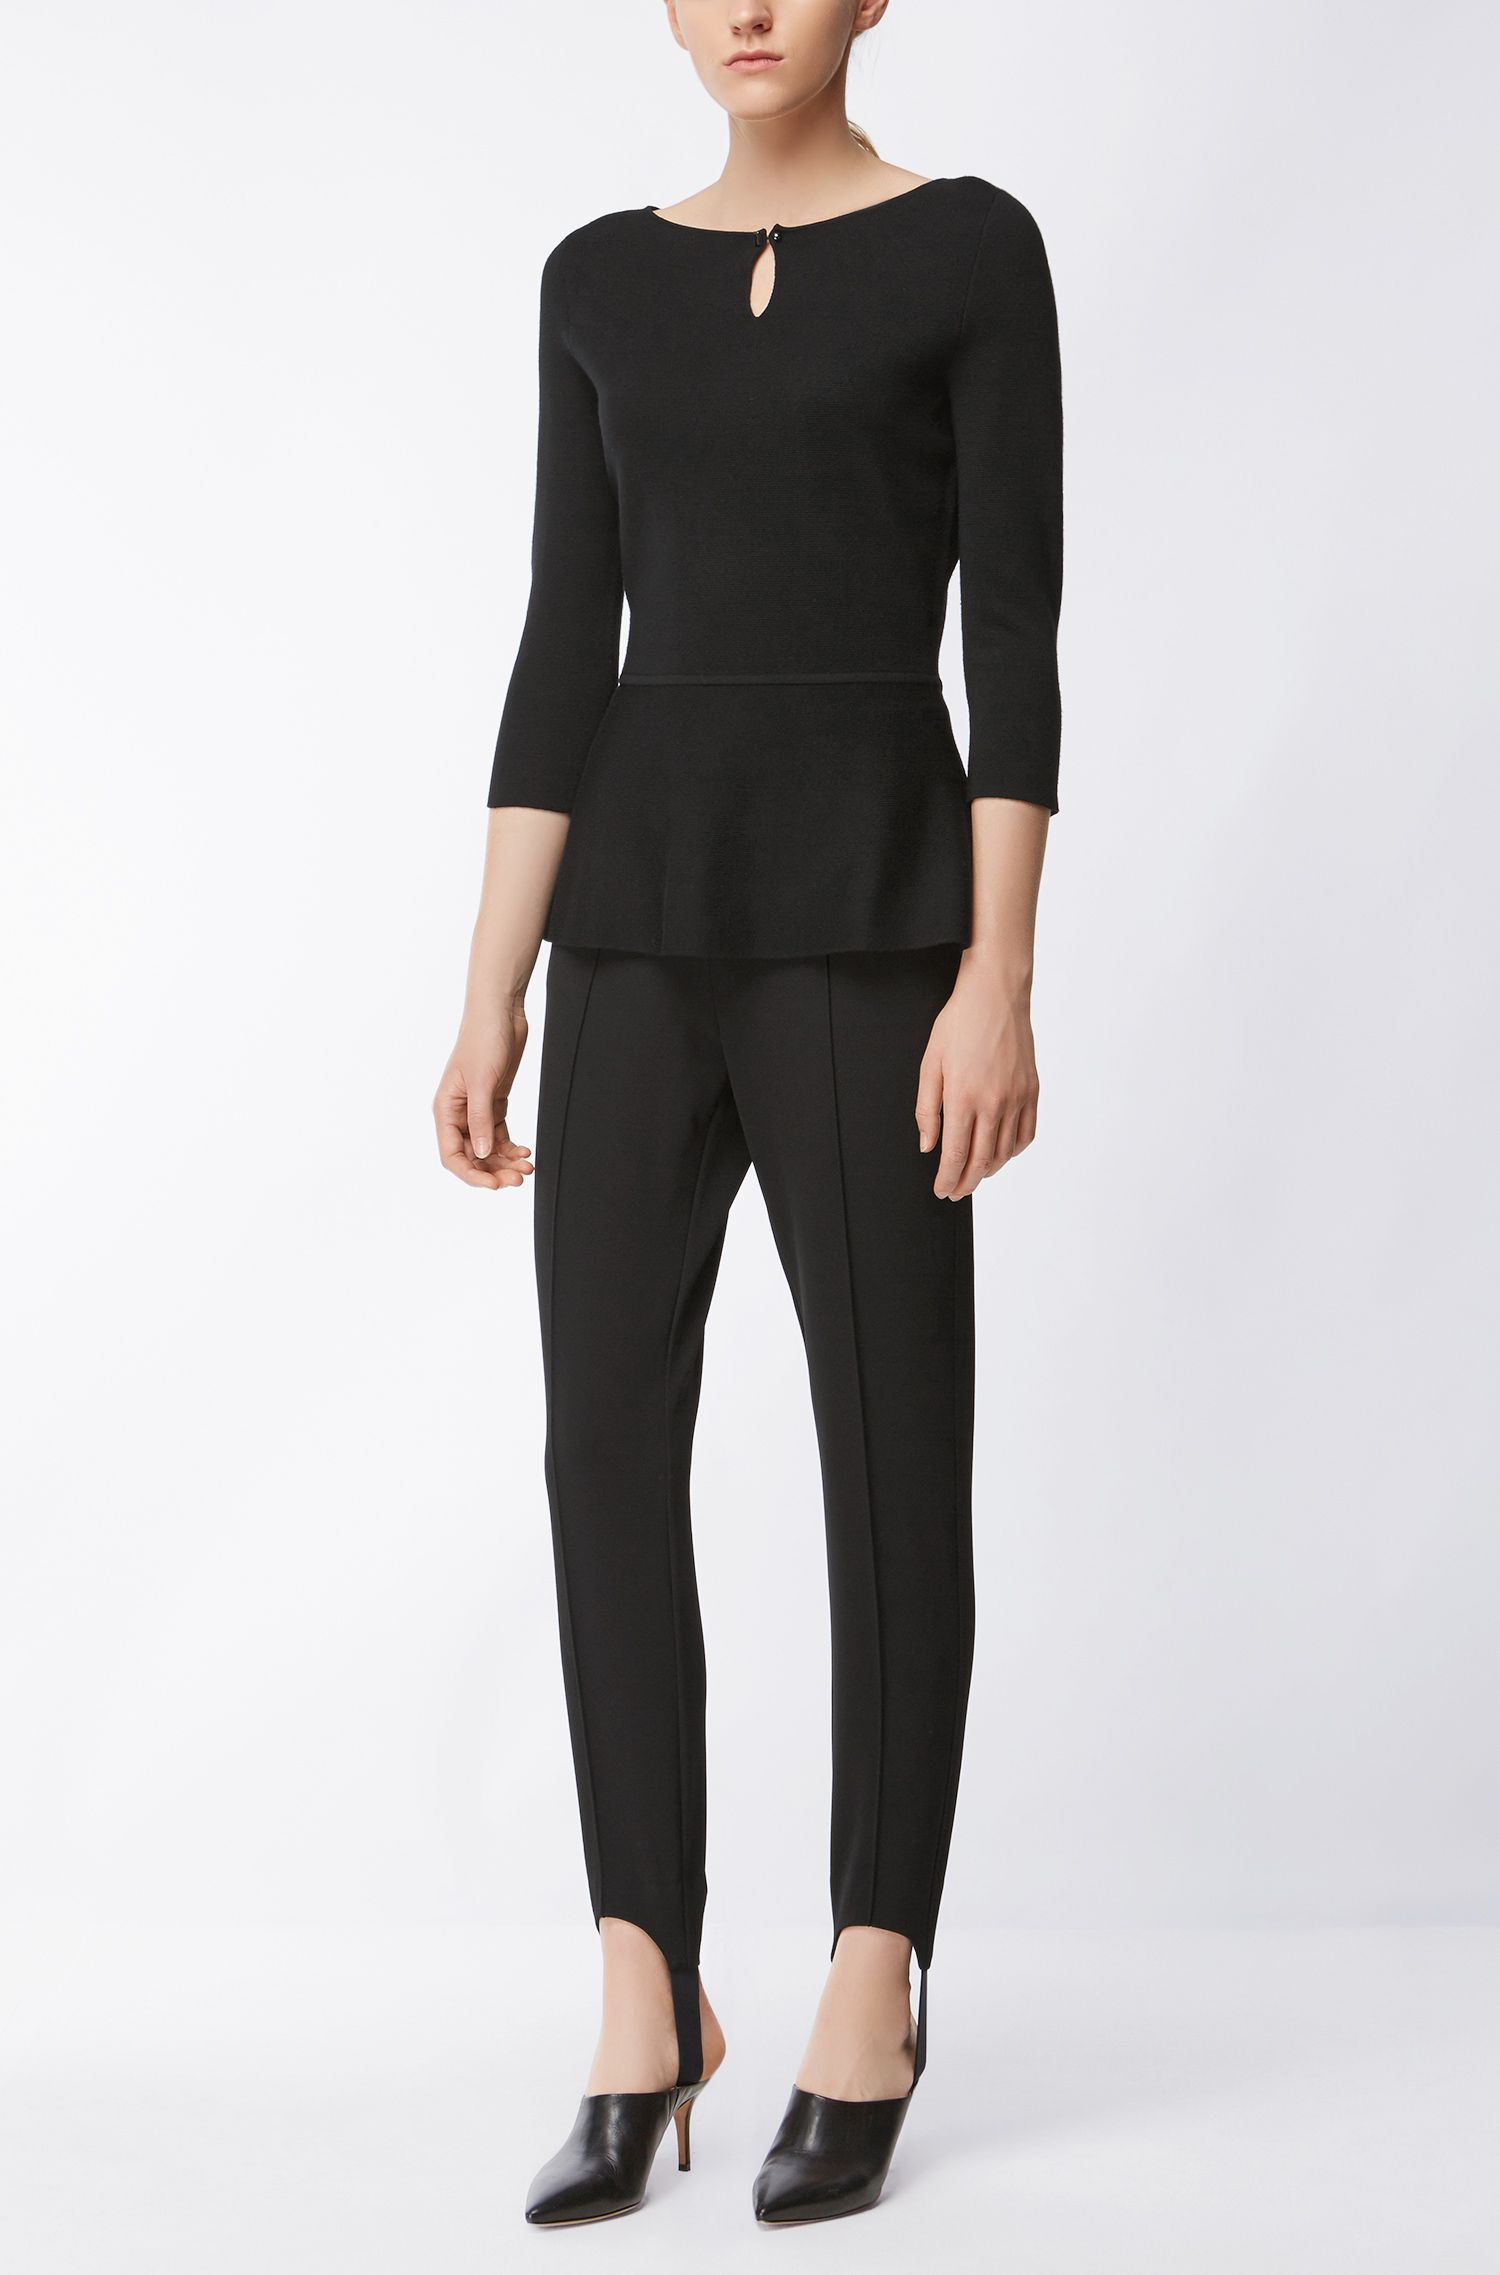 Superfine Merino Wool Peplum Top | Fylle, Black